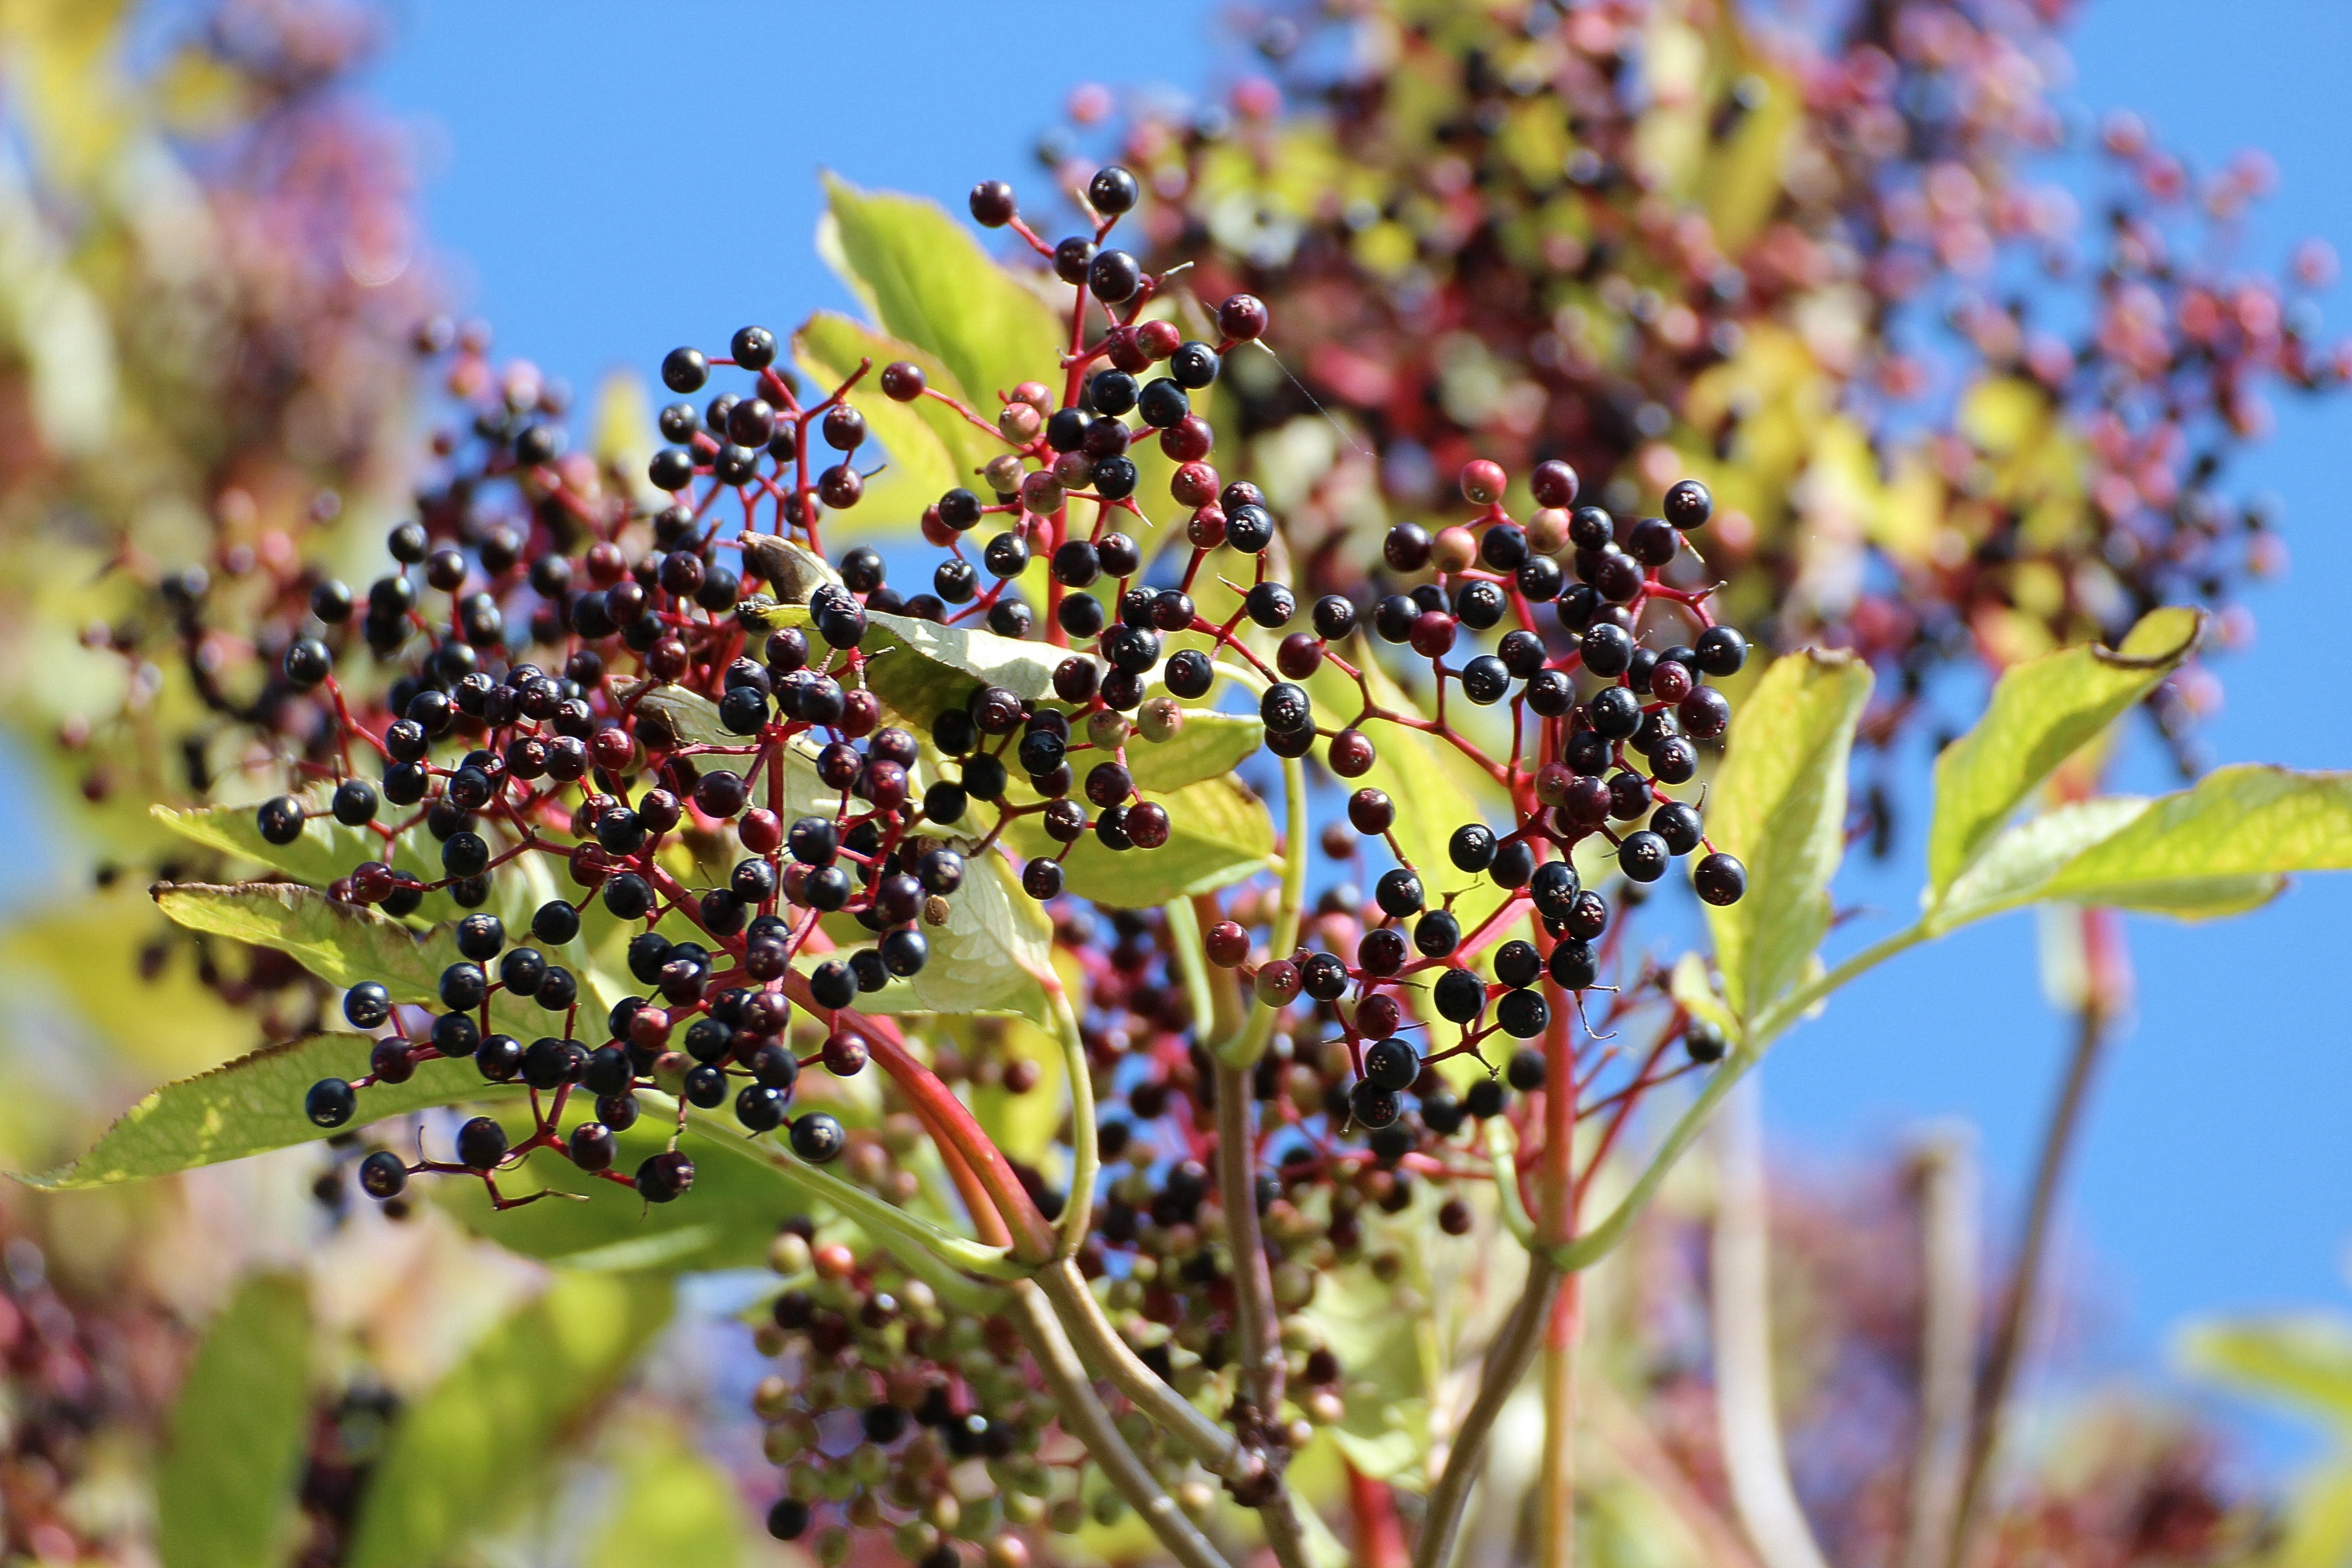 Black Round Fruits at Daytime